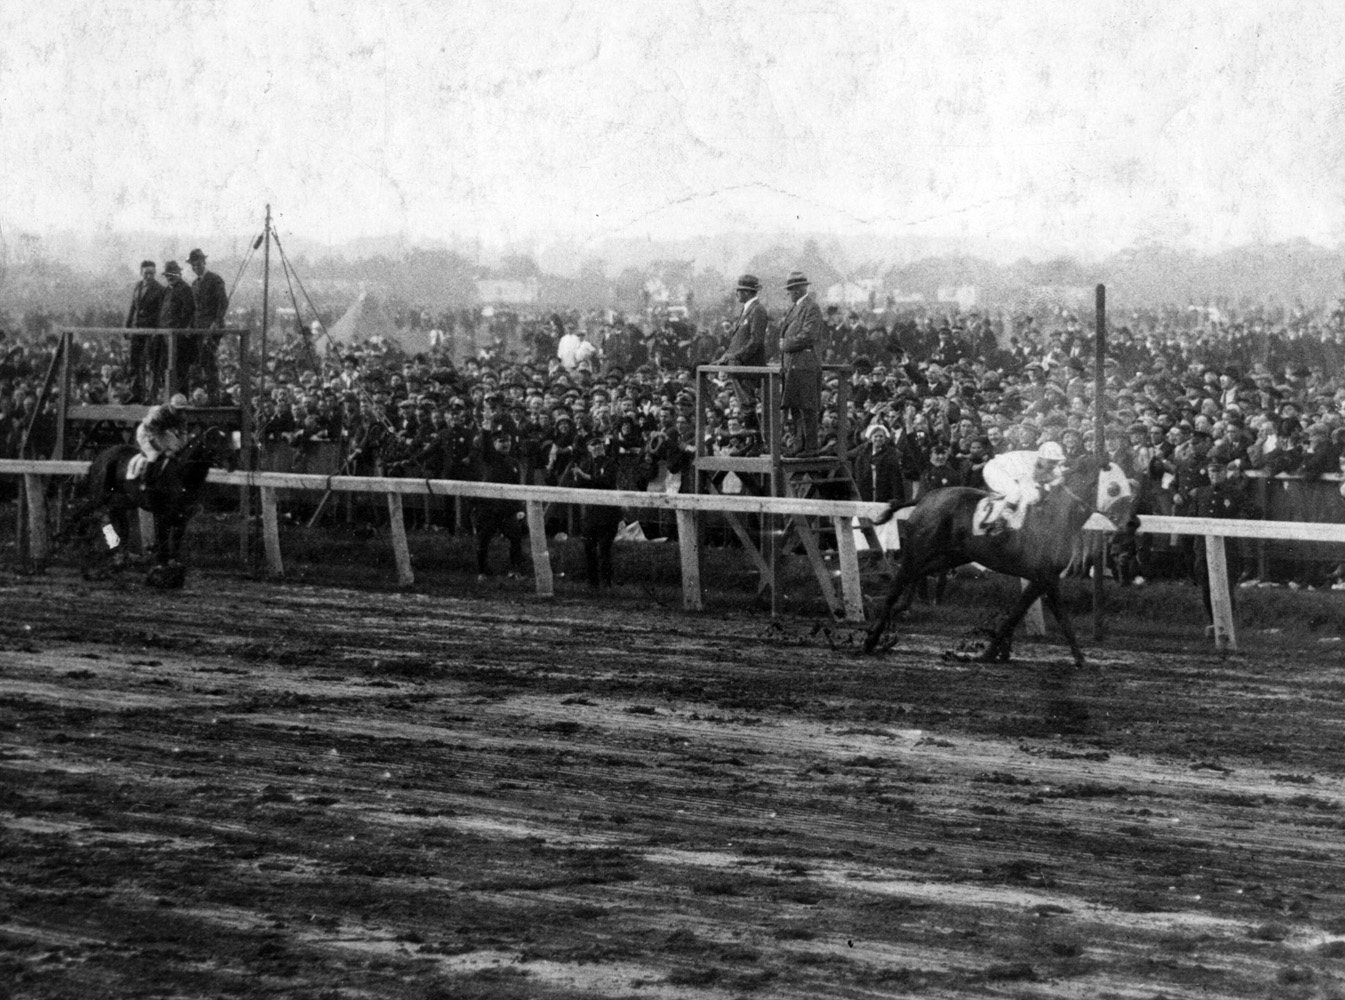 Zev (Earl Sande up) defeating Papyrus in their famous match race at Belmont Park, October 1923 (Museum Collection)